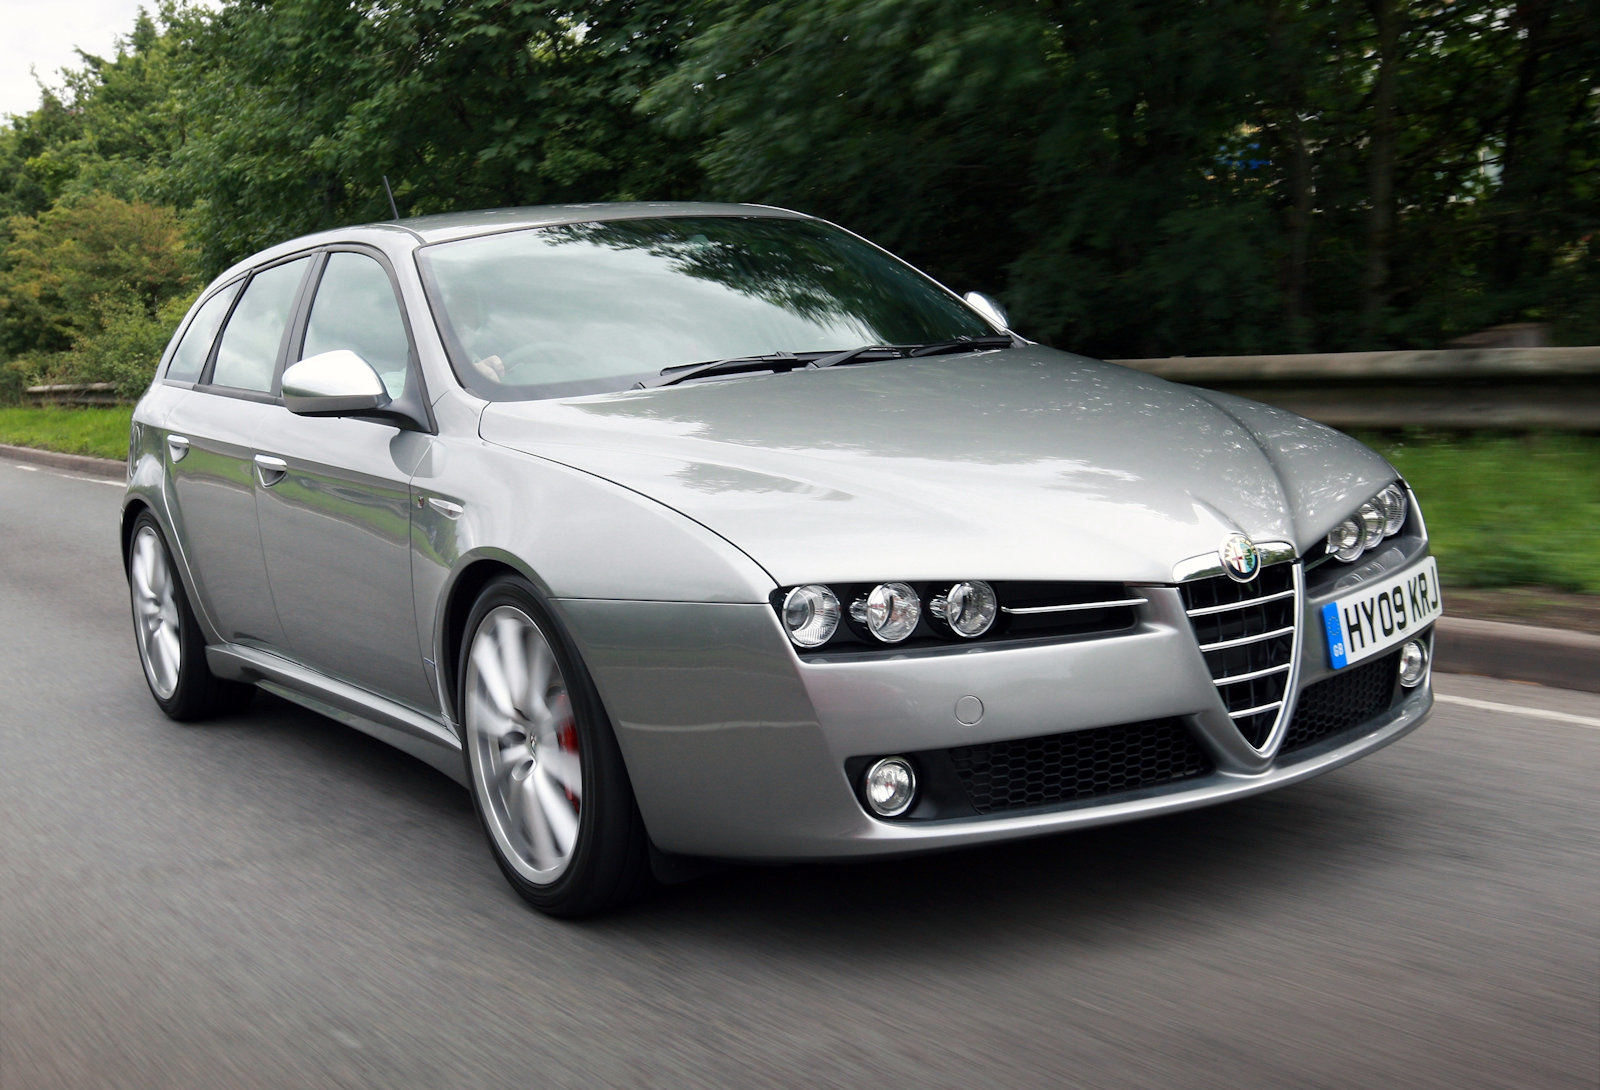 image of a Alfa Romeo 159 car exterior